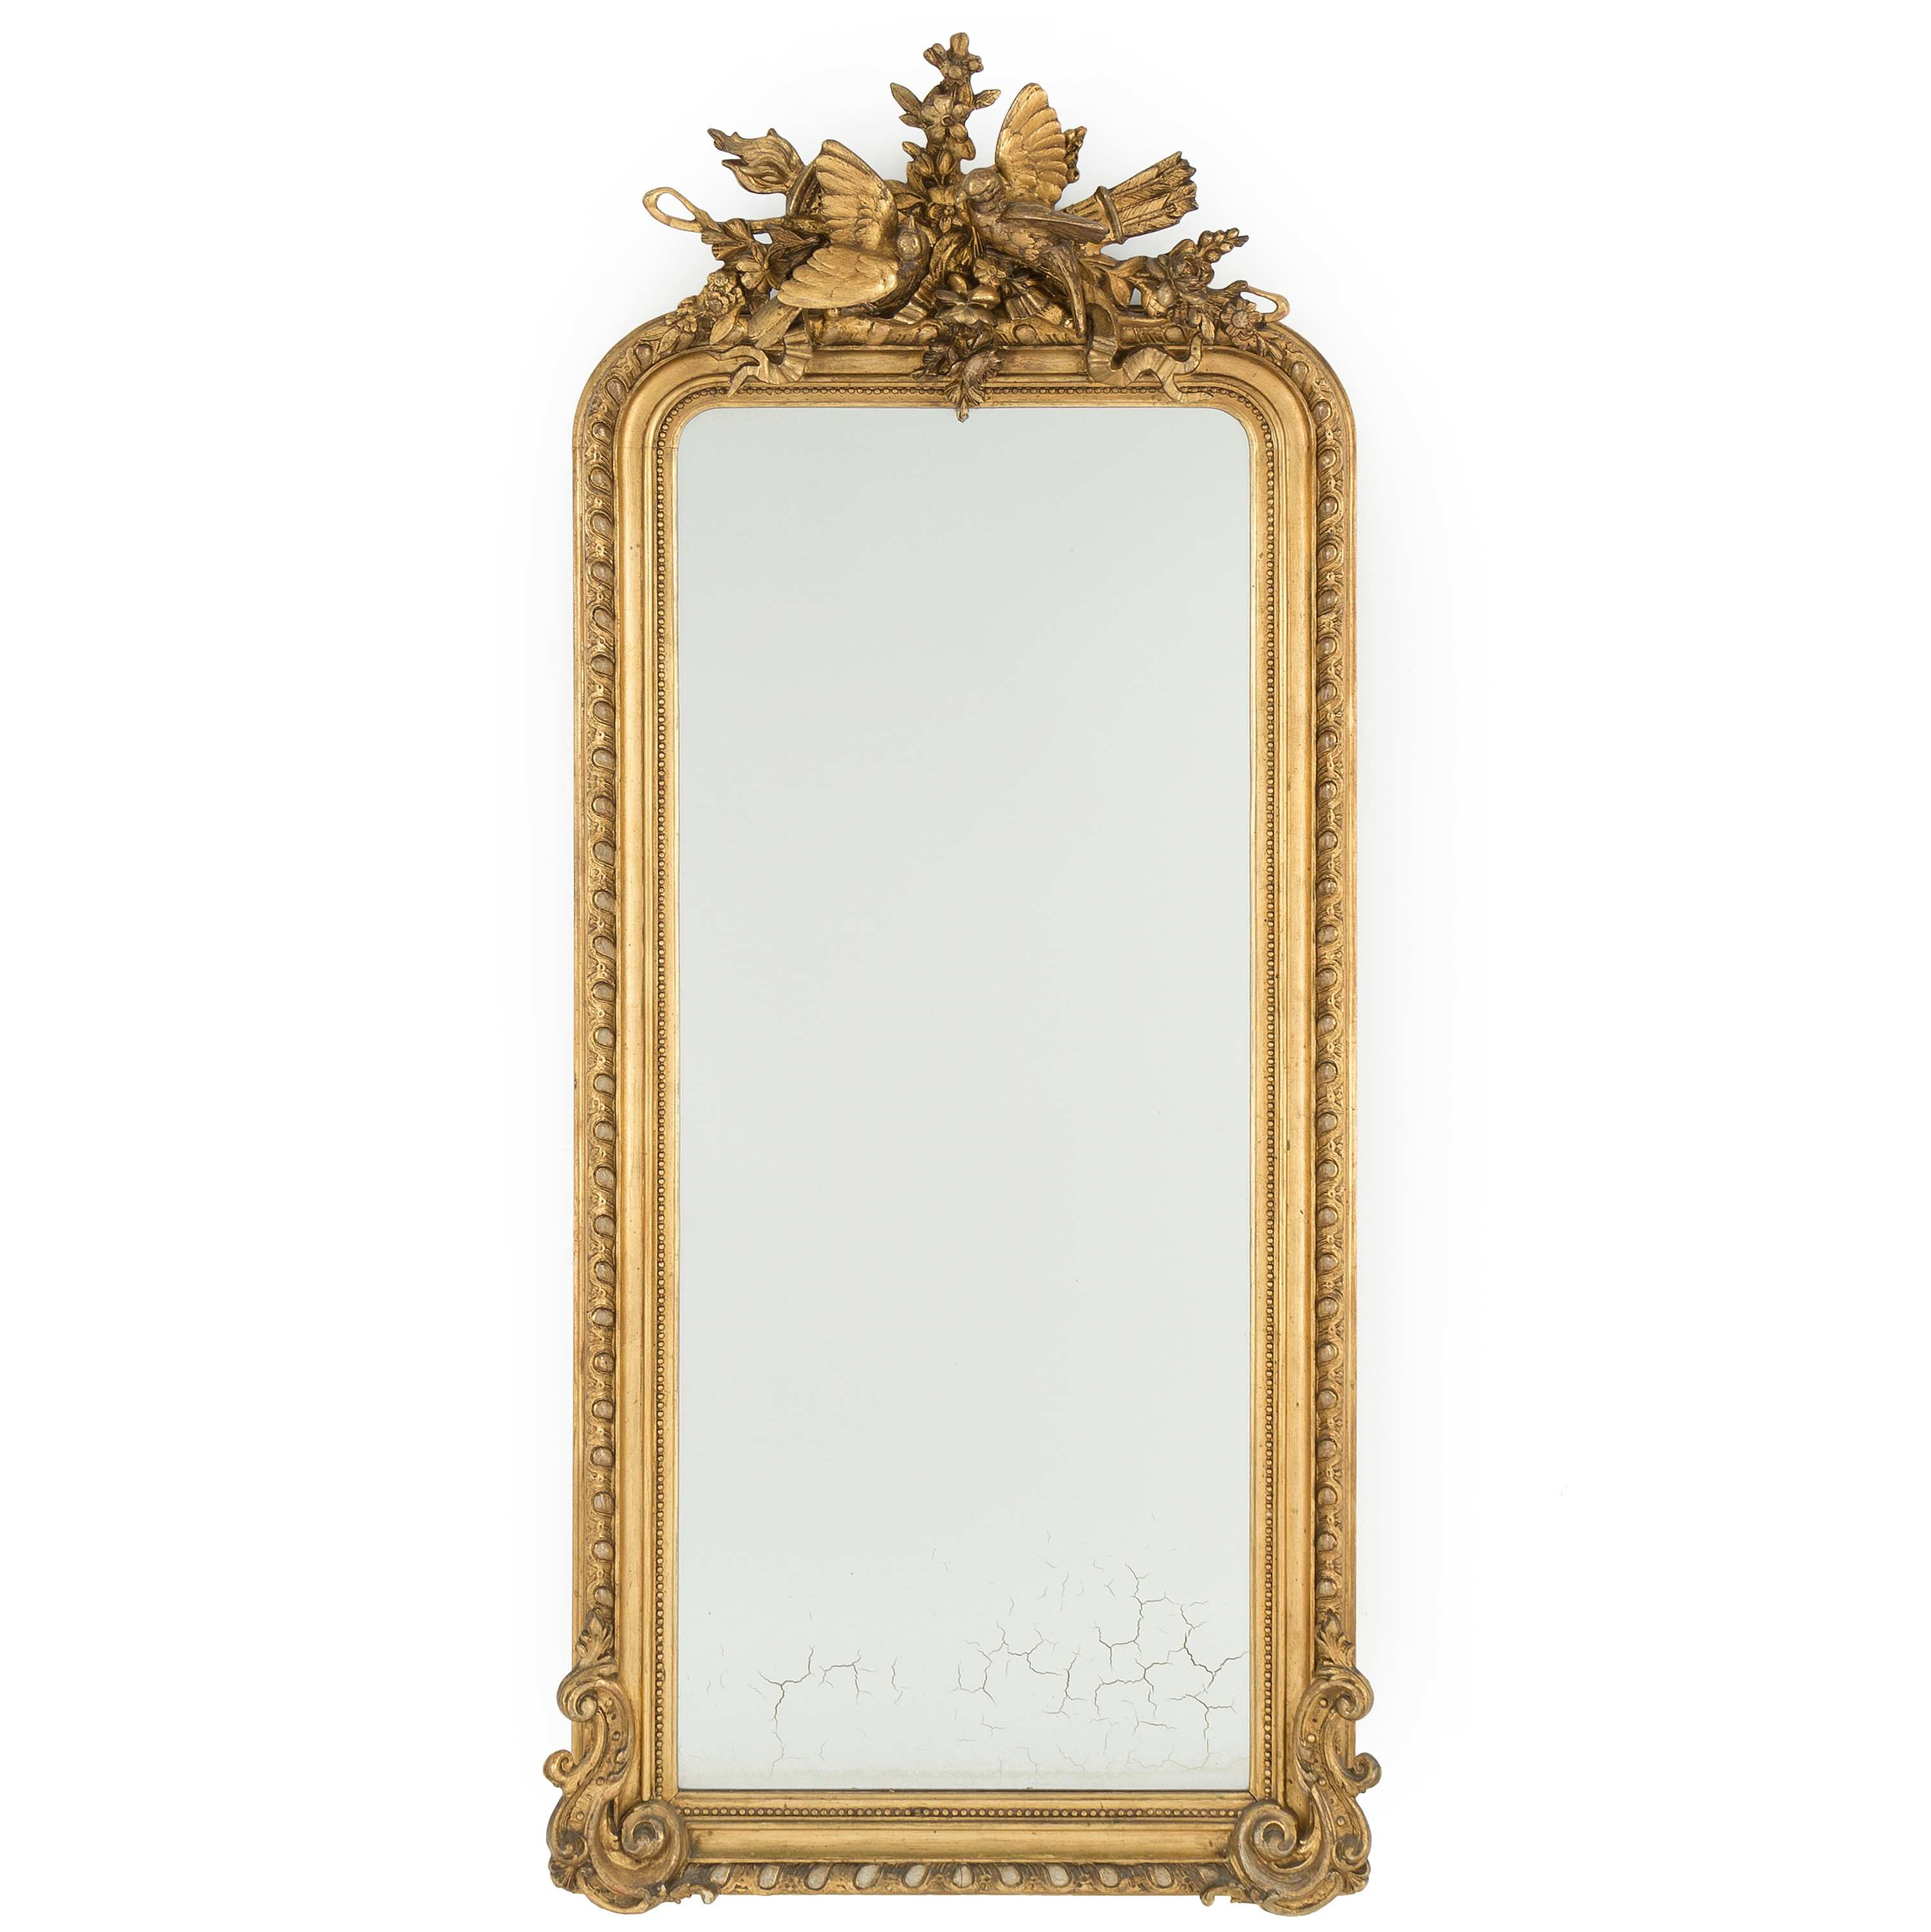 NYSTILAR A matched Rococo style mirror and console table early